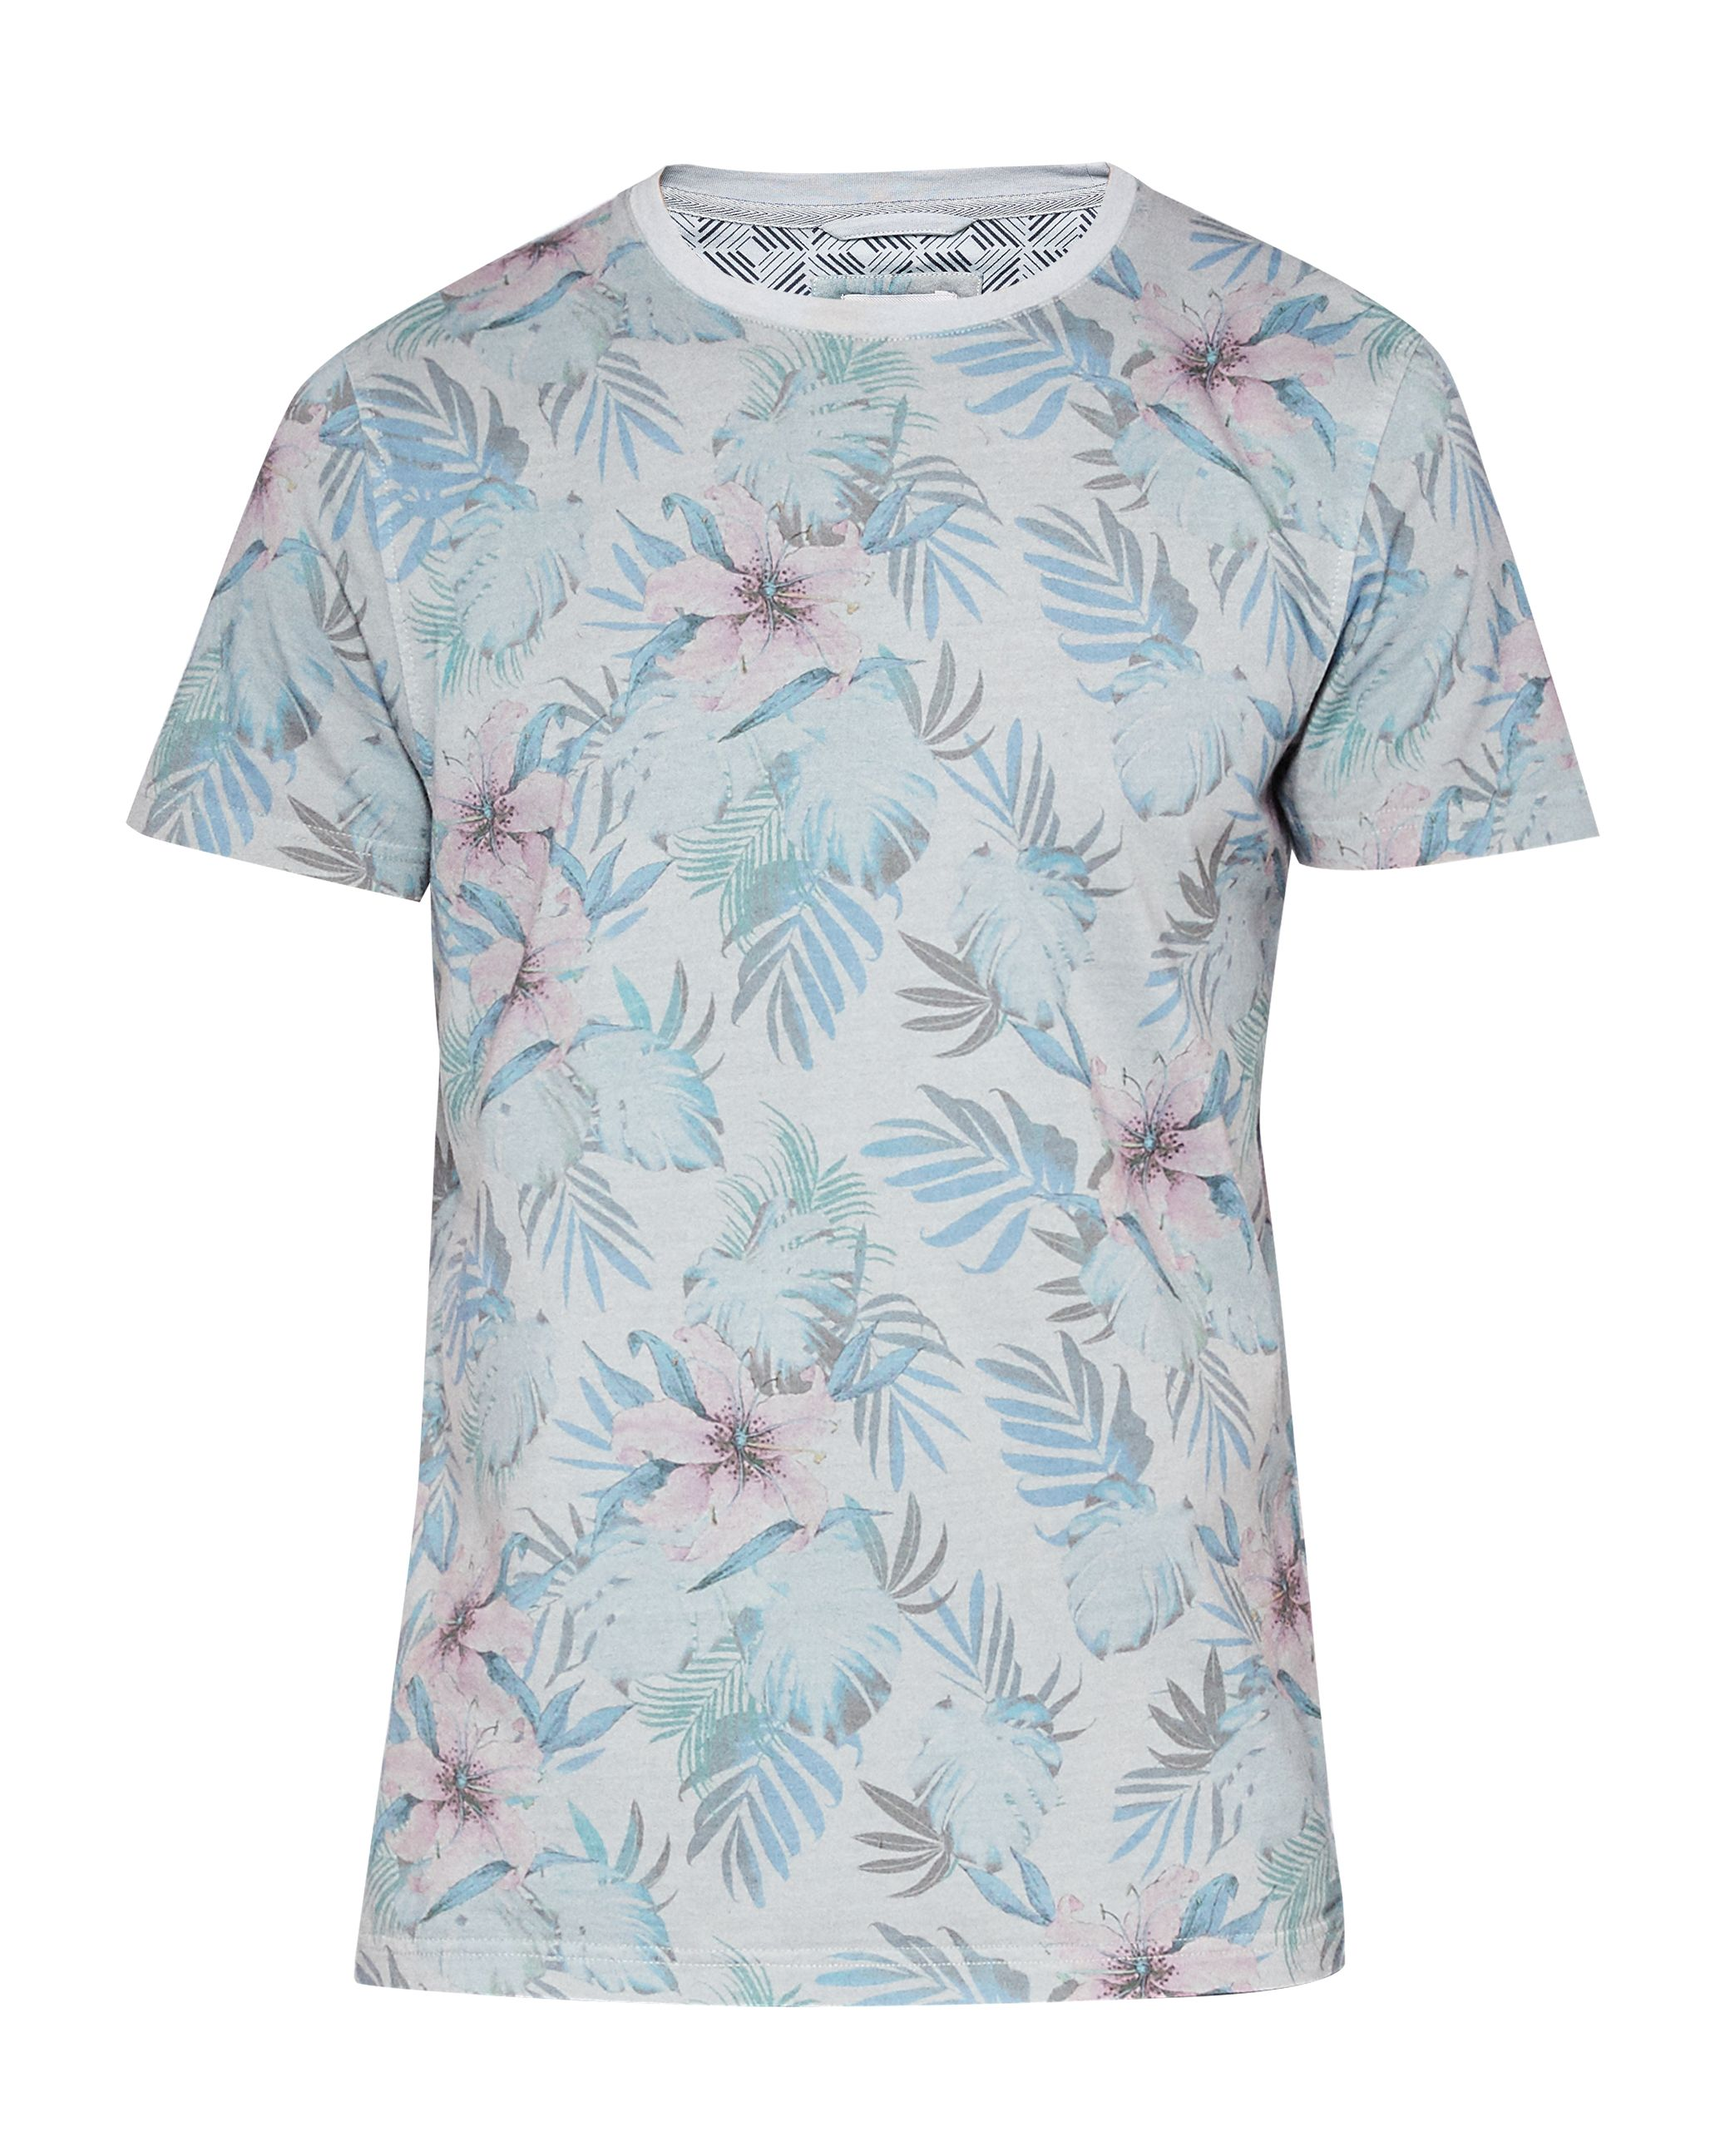 Men's Ted Baker Bartney Floral Print Cotton T-Shirt, Green